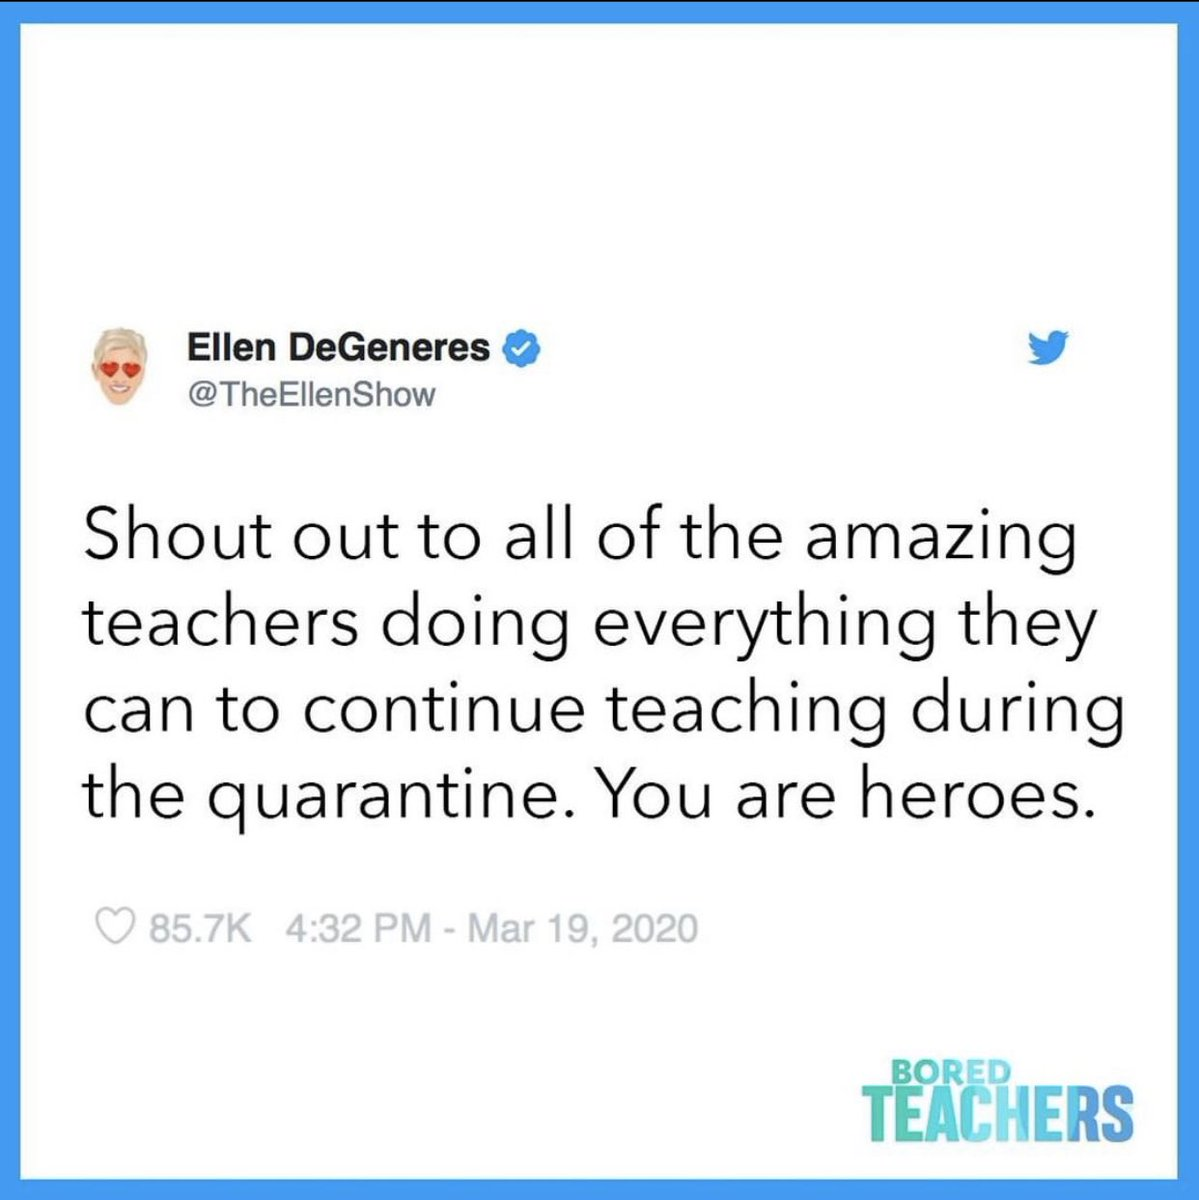 <a target='_blank' href='http://twitter.com/TheEllenShow'>@TheEllenShow</a> gave a shoutout to all of the teachers who are delivering fabulous instruction remotely, despite the quarantine. Keep up the excellent work! 🎉 <a target='_blank' href='https://t.co/eEqEVyFNnF'>https://t.co/eEqEVyFNnF</a>